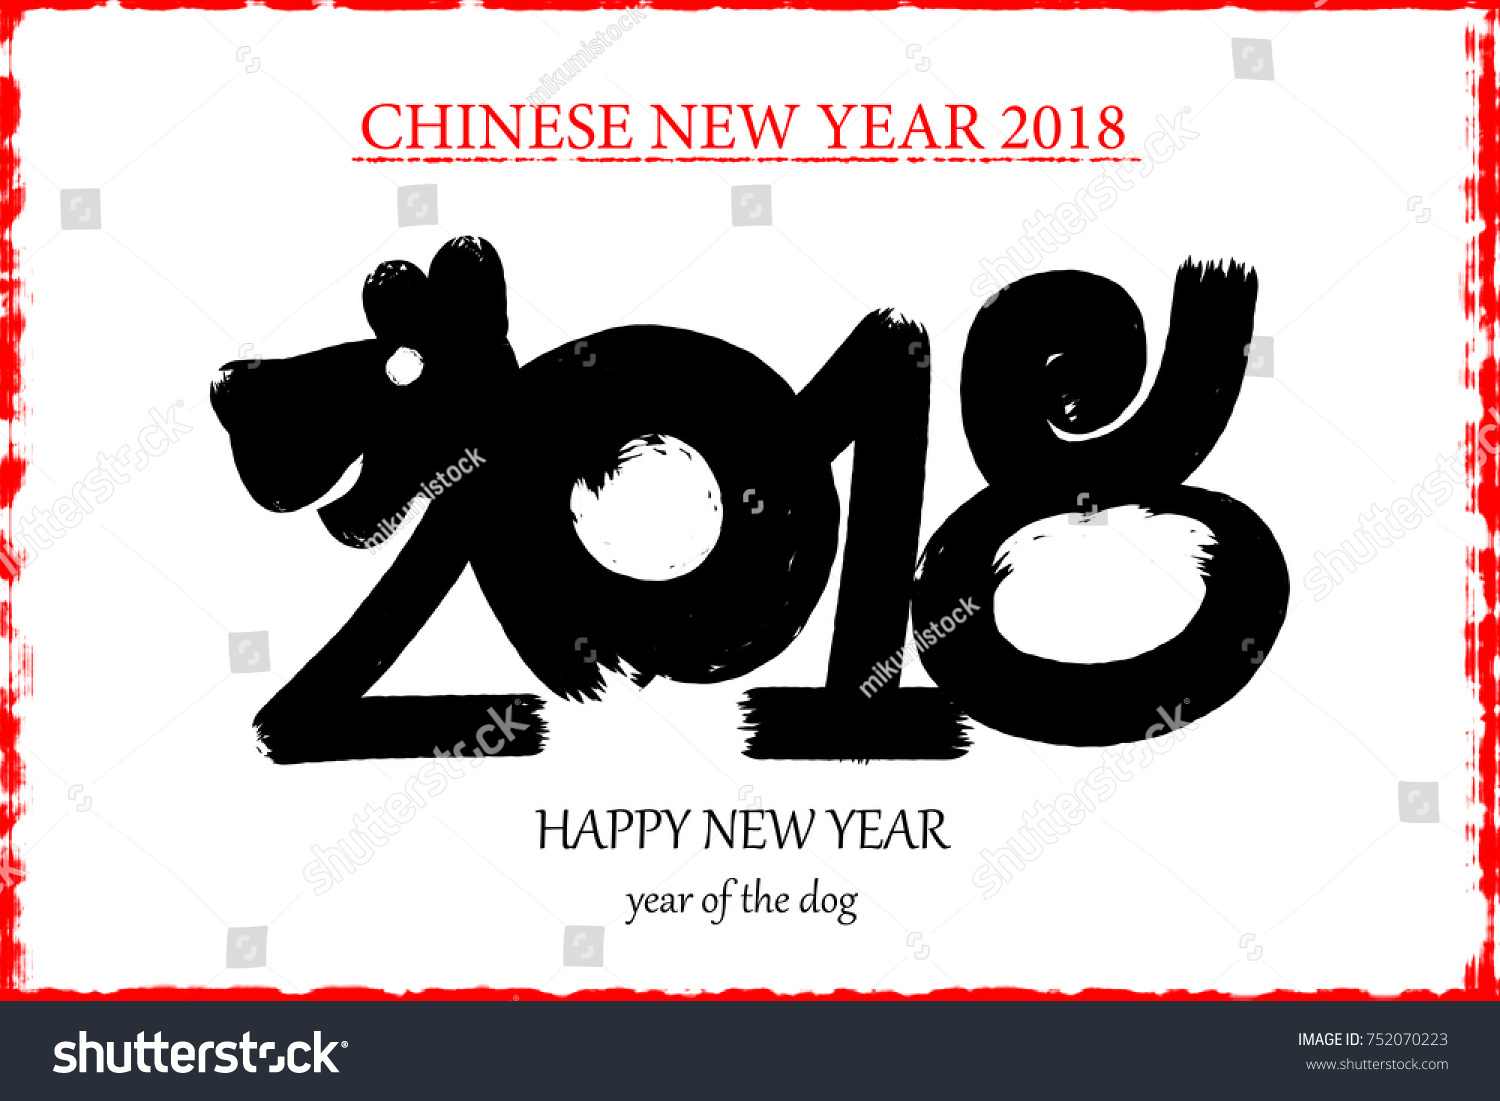 2018 happy new year number dog shape drawing style for add text above